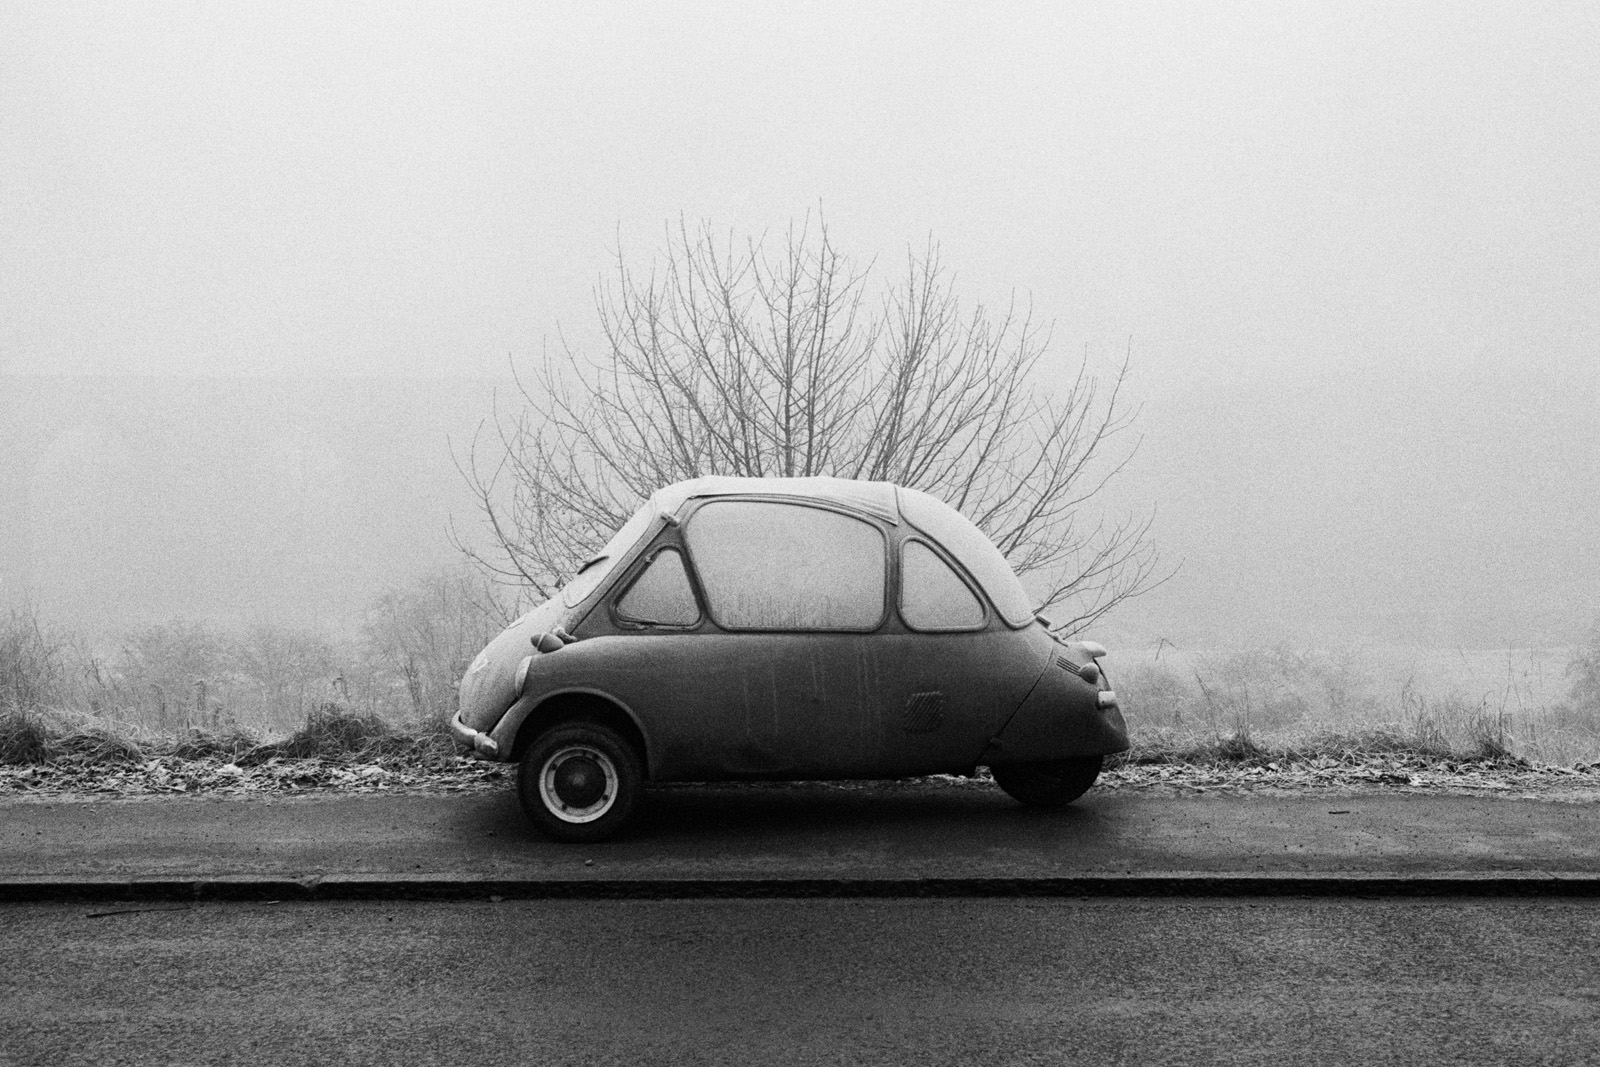 GB. England. Elland. From 'Bad Weather'. December. 1978.